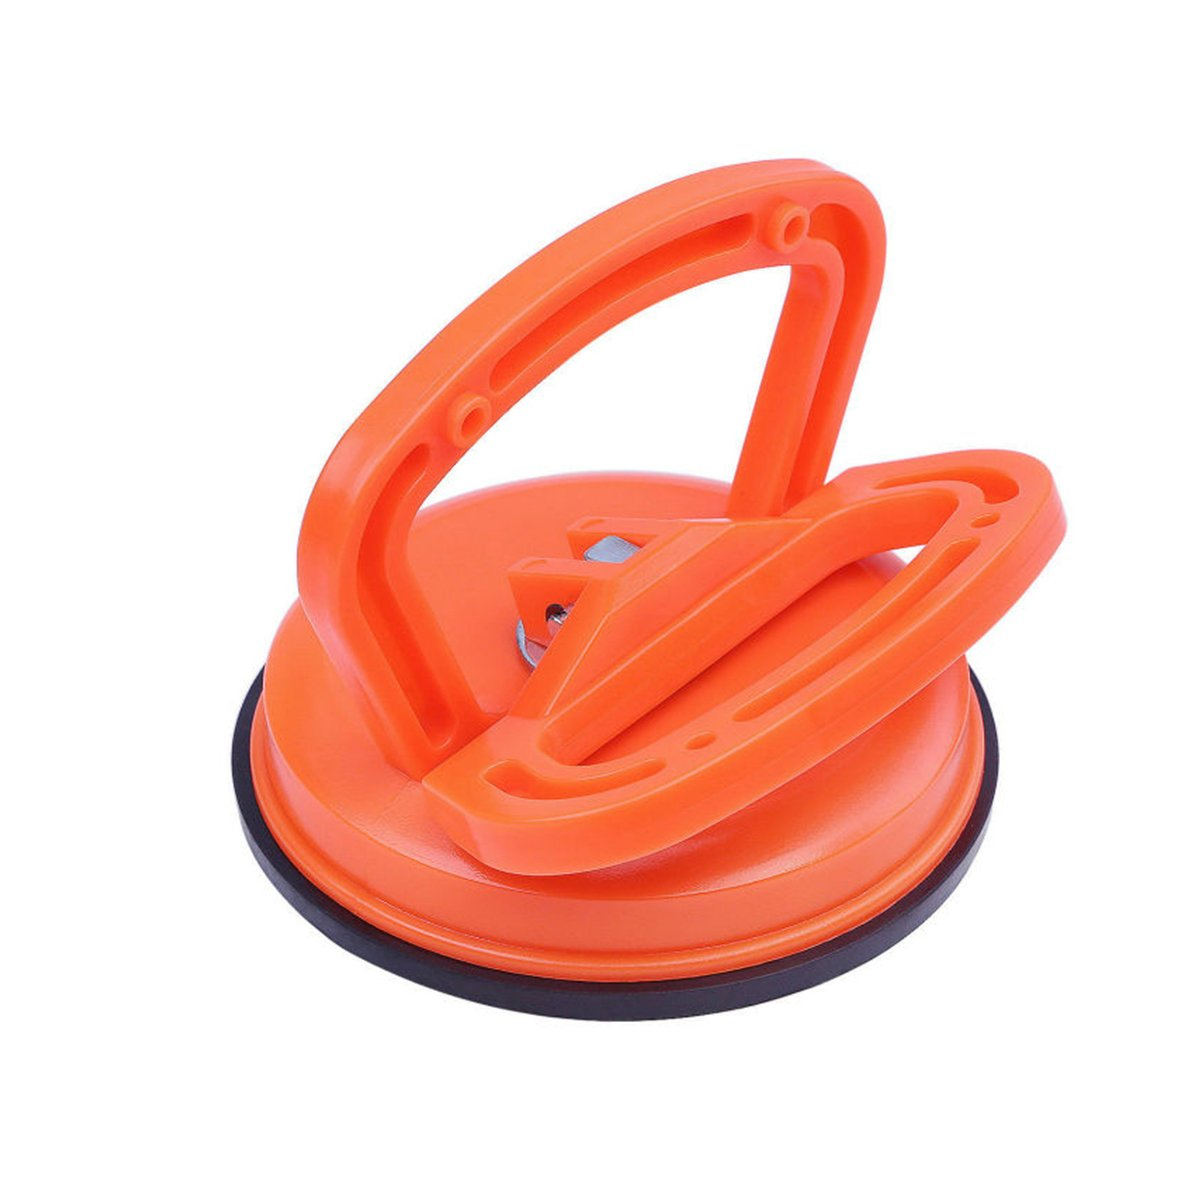 WINOMO Vacuum Suction Cup Car Dent Repair Remover Tool Handle Dent Lifter Puller Glass Lifting